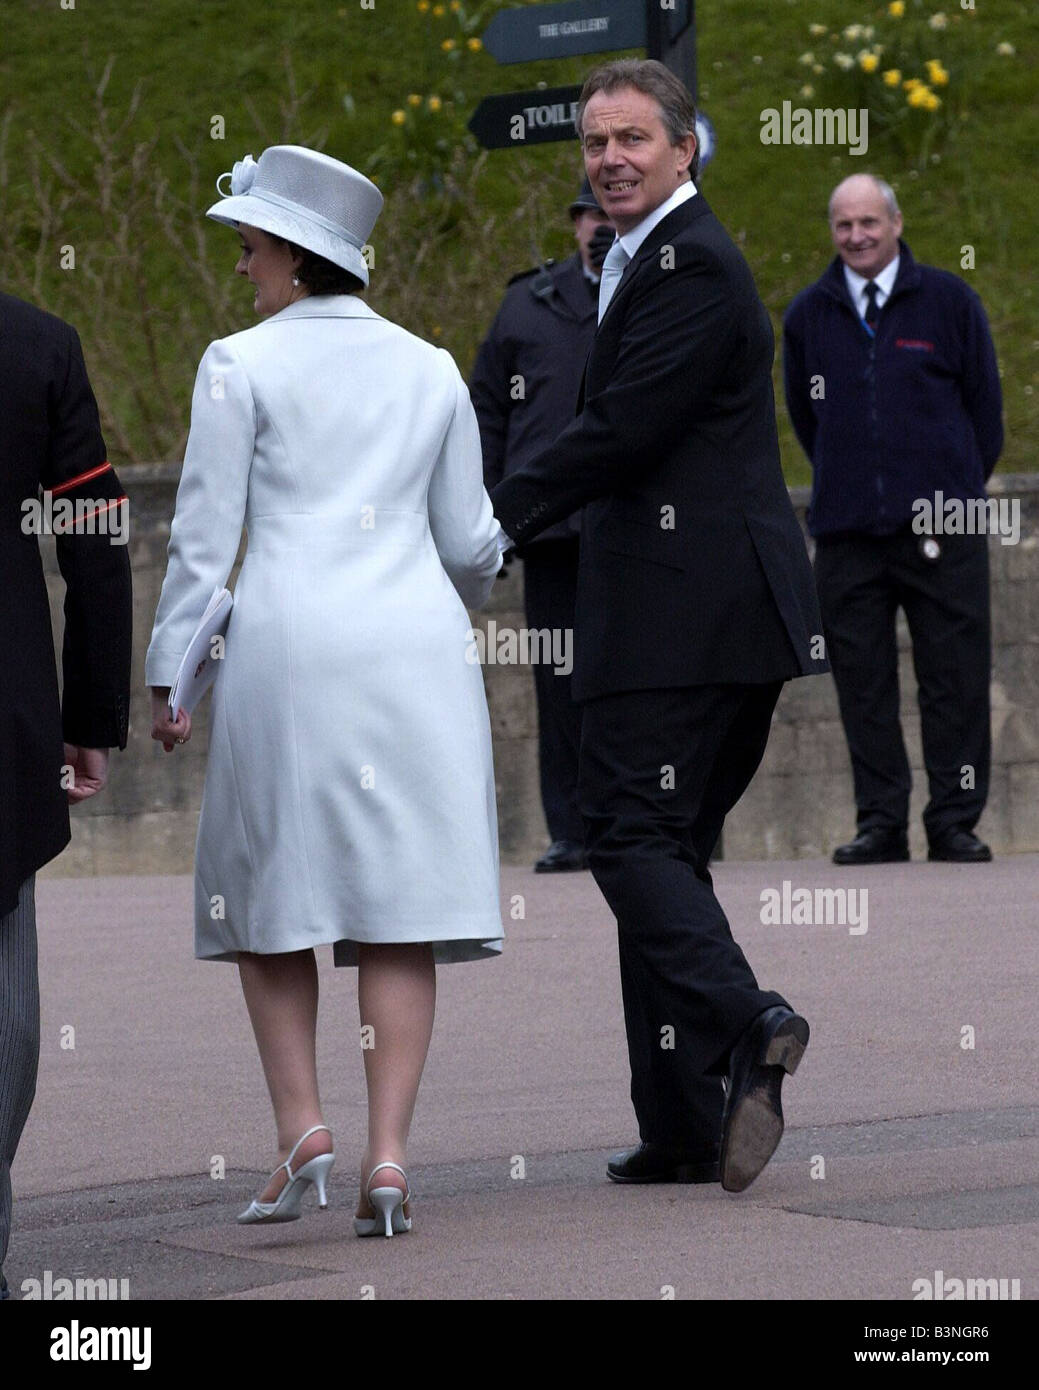 Prime Minister Tony Blair with wife Cherie Blair April 2005 - Stock Image